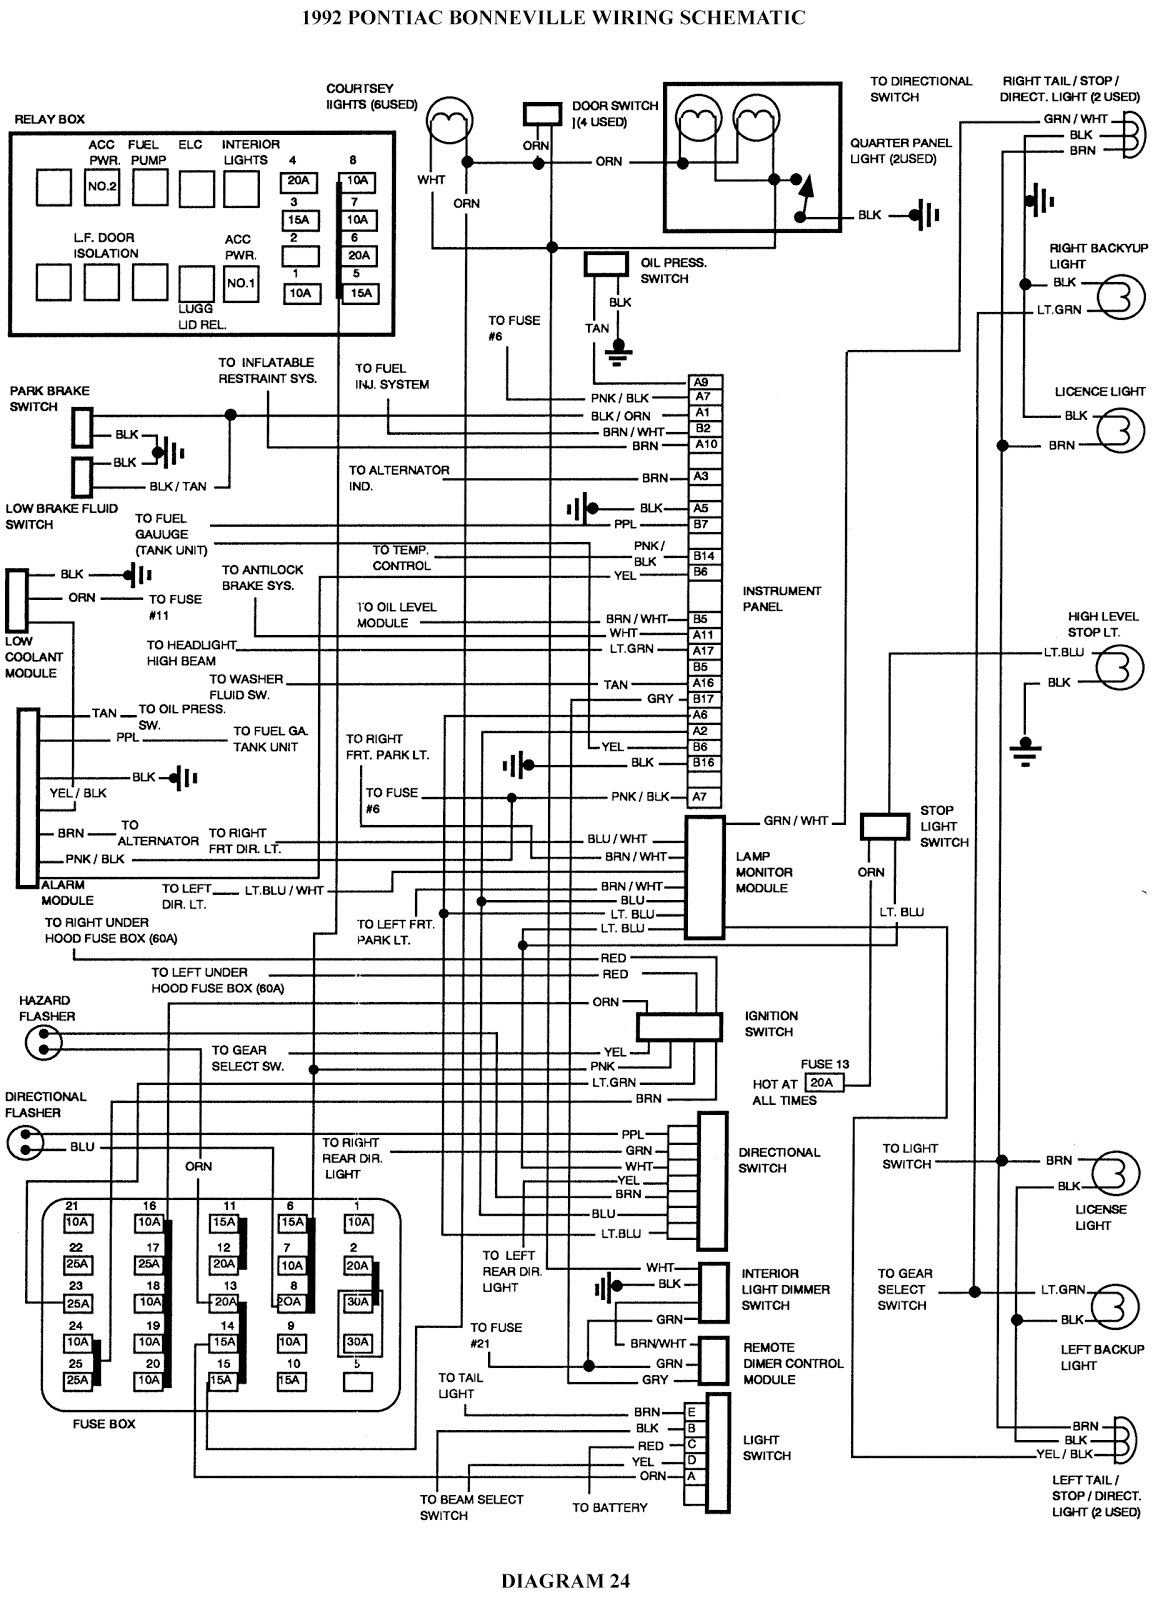 intrigue wiring diagram get image about wiring diagram